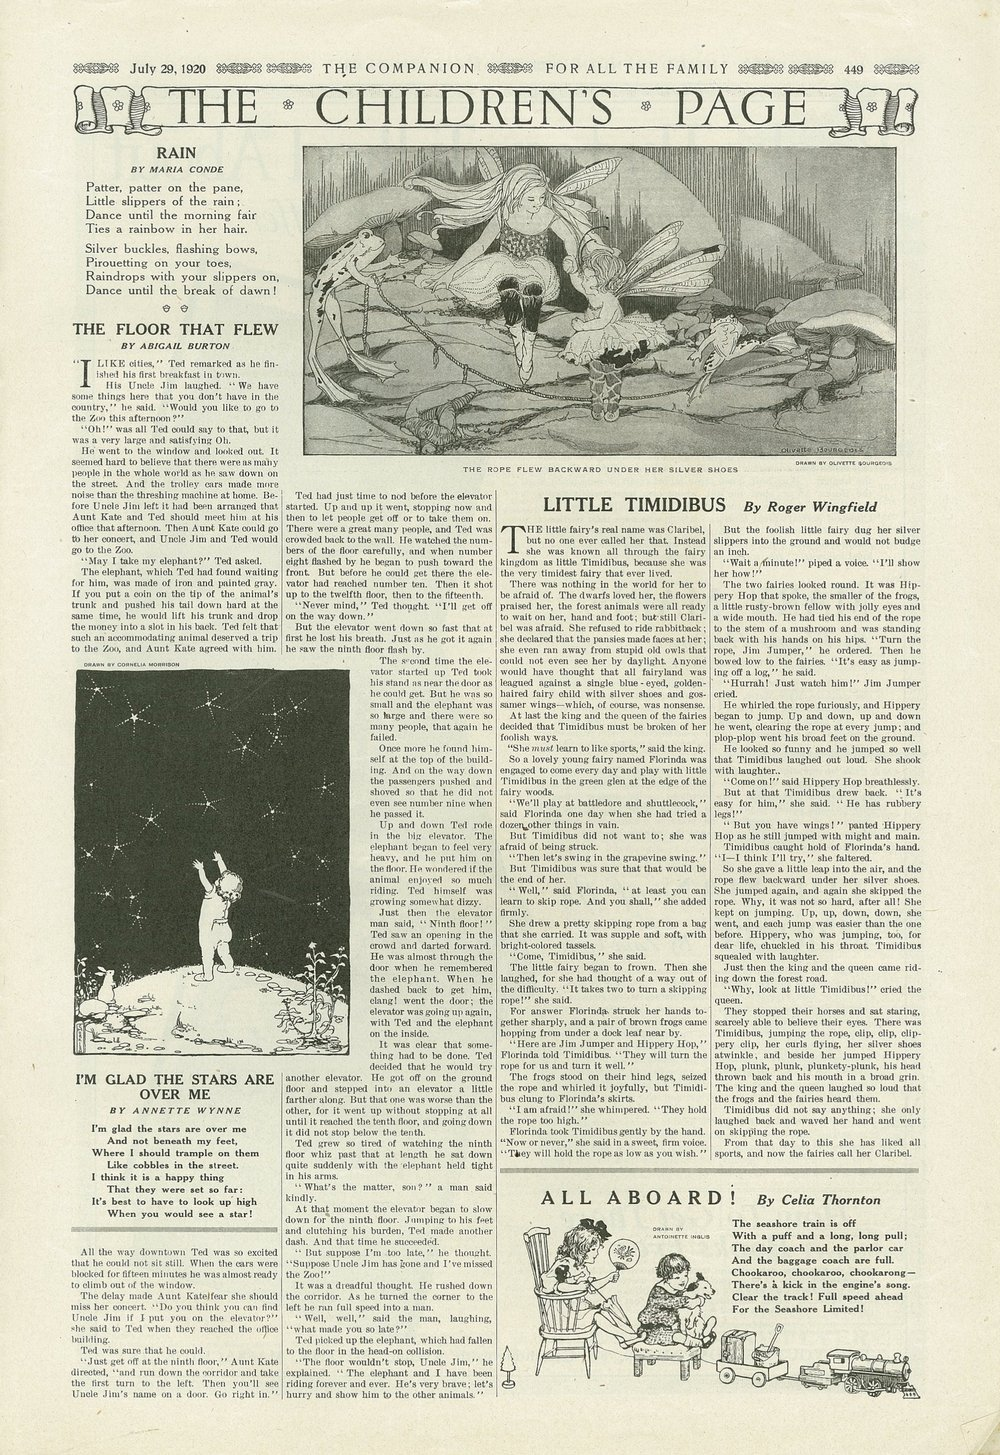 The Youth's Companion - July 29th, 1920 - Vol. 94 - No. 31